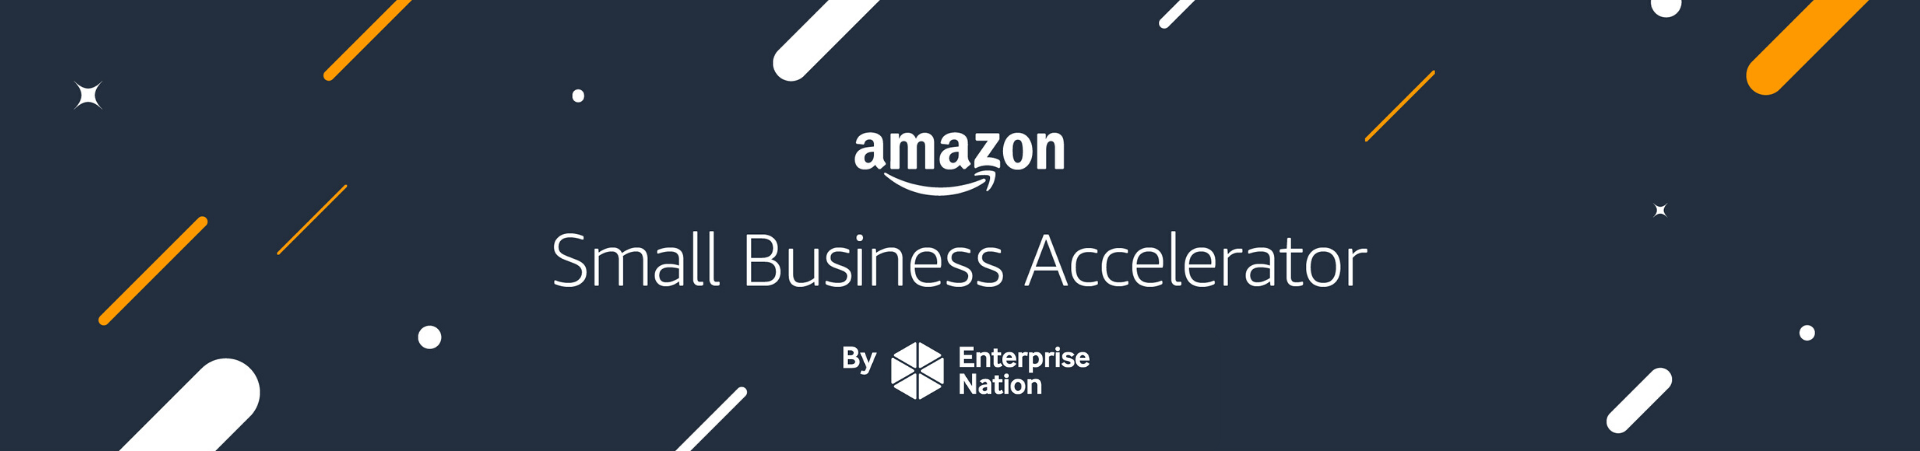 Join the Amazon Small Business Accelerator for free today